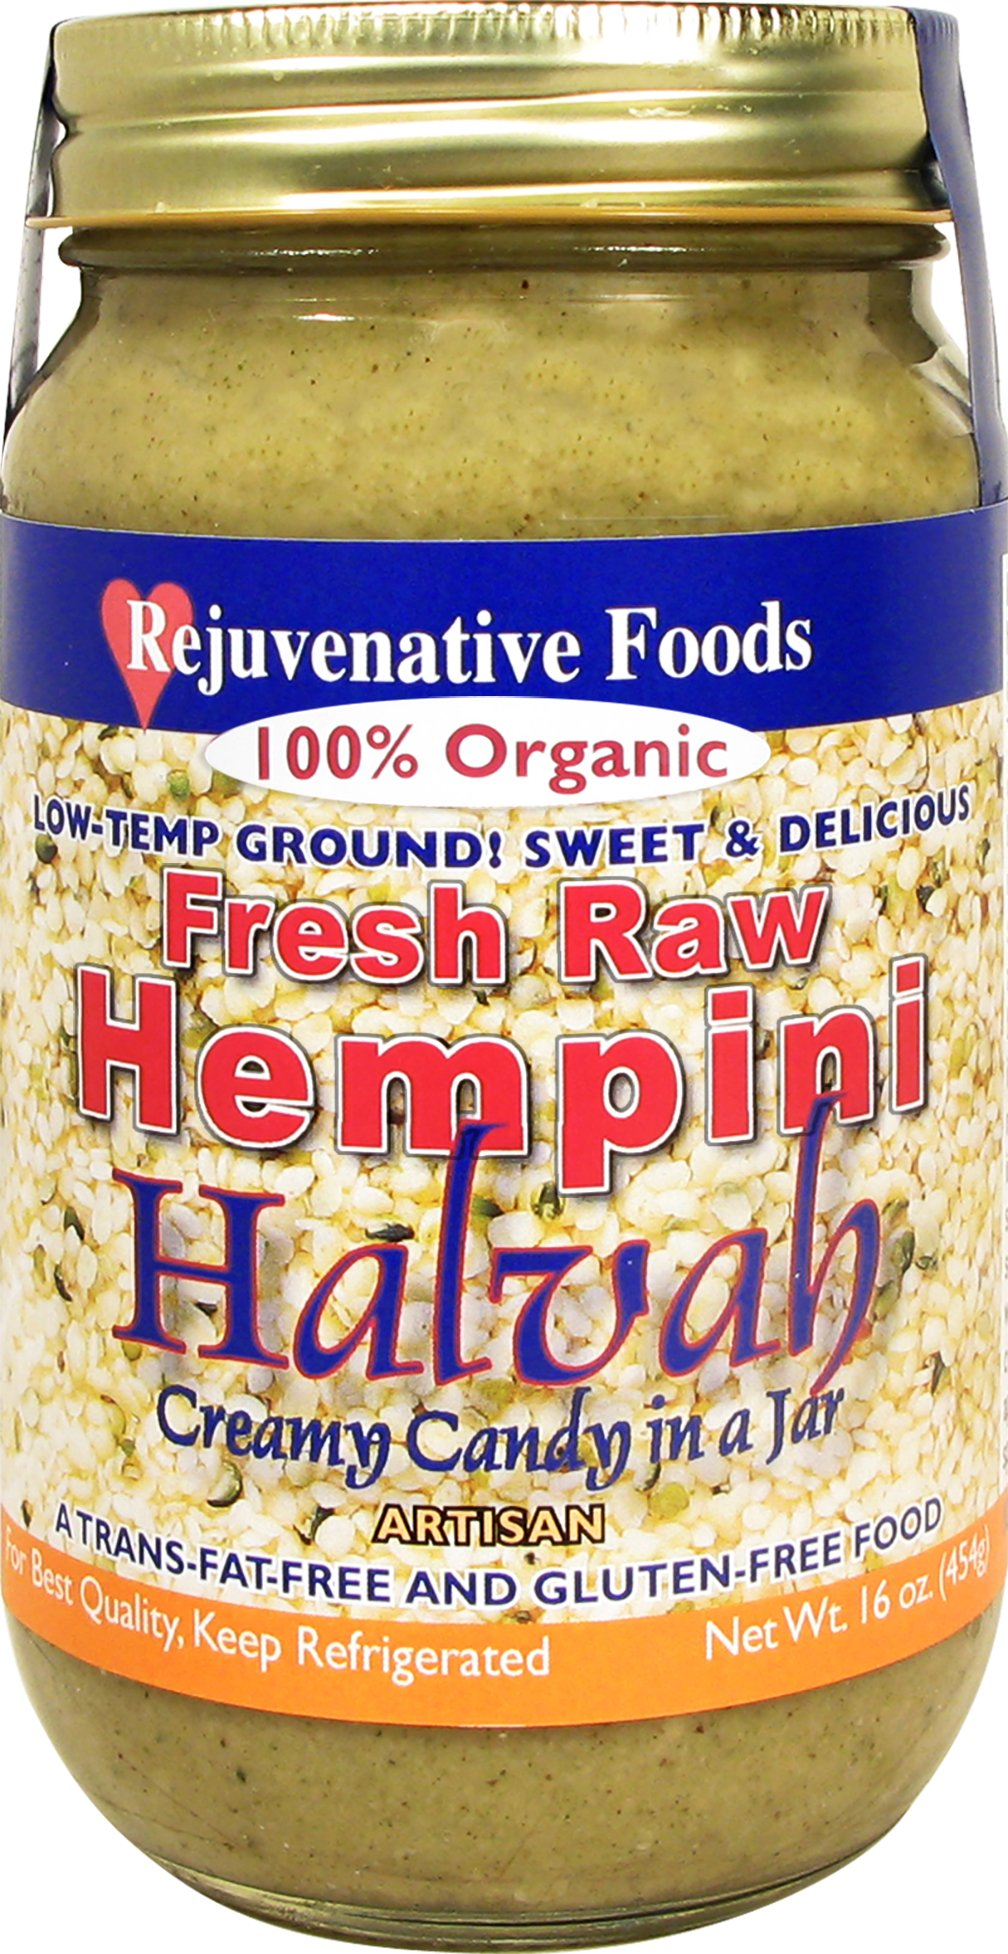 Fresh Raw Organic Hempini Halvah Honey Hemp Seed Sesame Butter Rejuvenative Foods Pure Low-Temp-Ground Candy-In-Glass Smooth-Creamy Vitamin-Protein-Antioxidant-Mineral-Nutrition Certified Organic16 oz